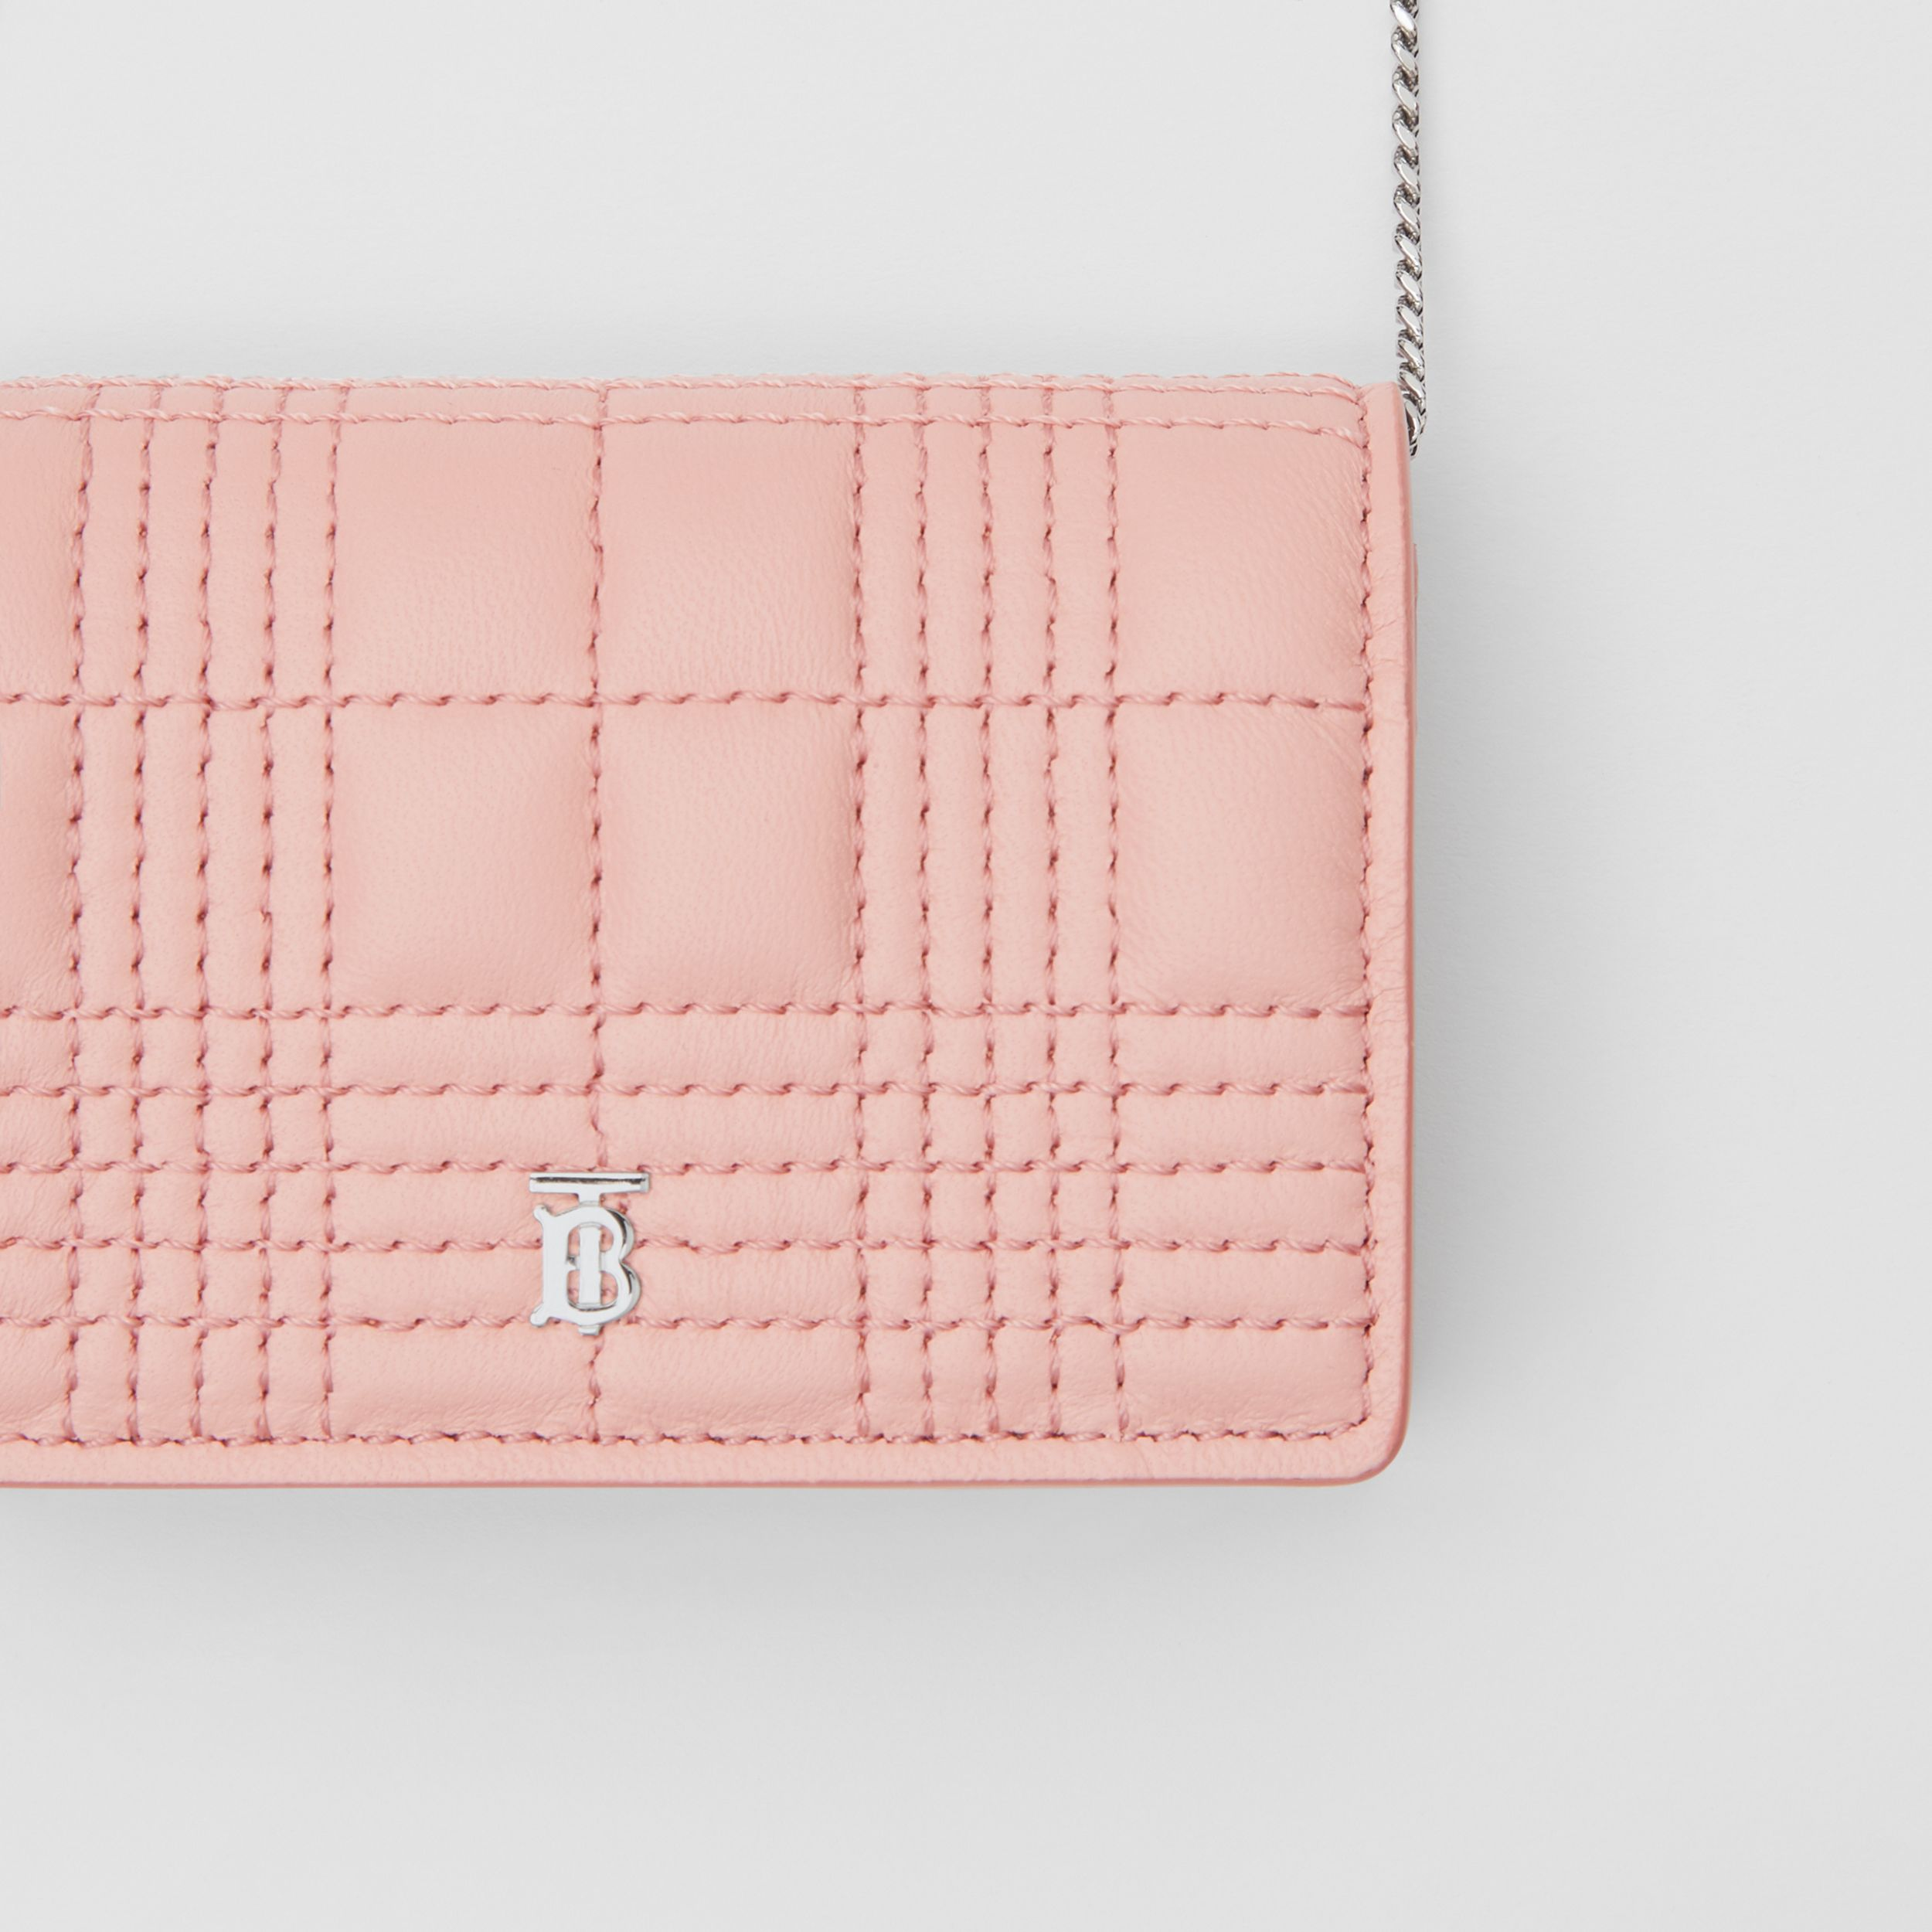 Quilted Lambskin Card Case with Detachable Strap in Blush Pink | Burberry - 2